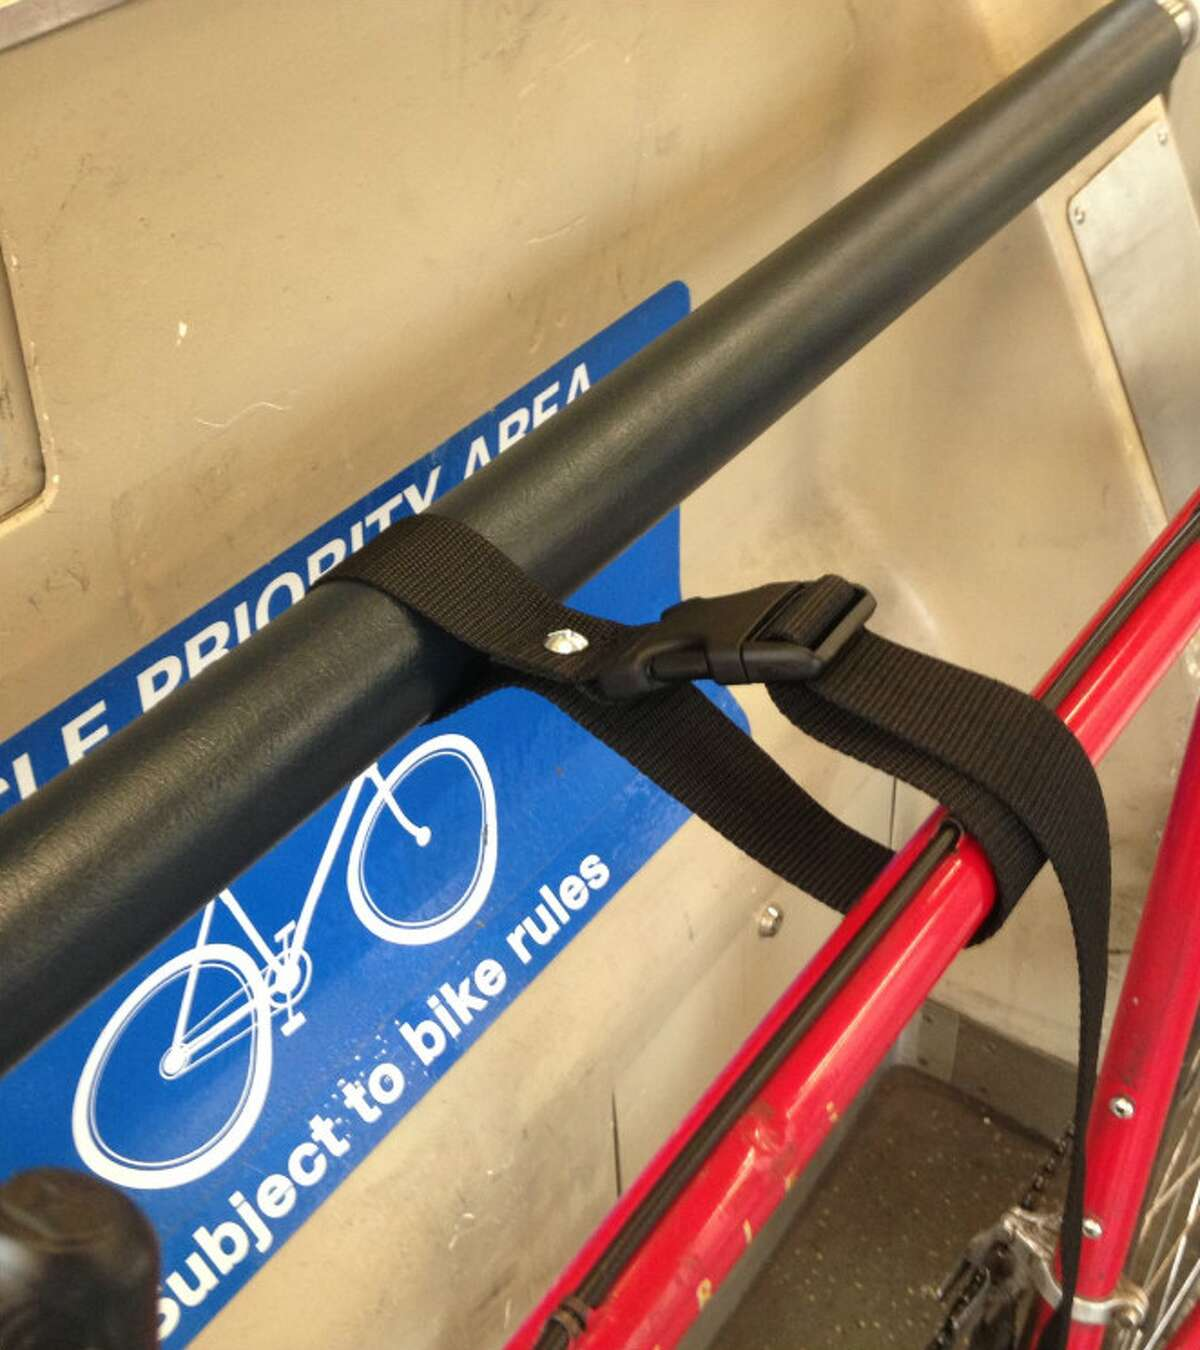 After a successful trial run, BART officials announced Monday that new bike straps would be attached to the rails of all trains in order for riders to achieve an overall easier onboard experience.